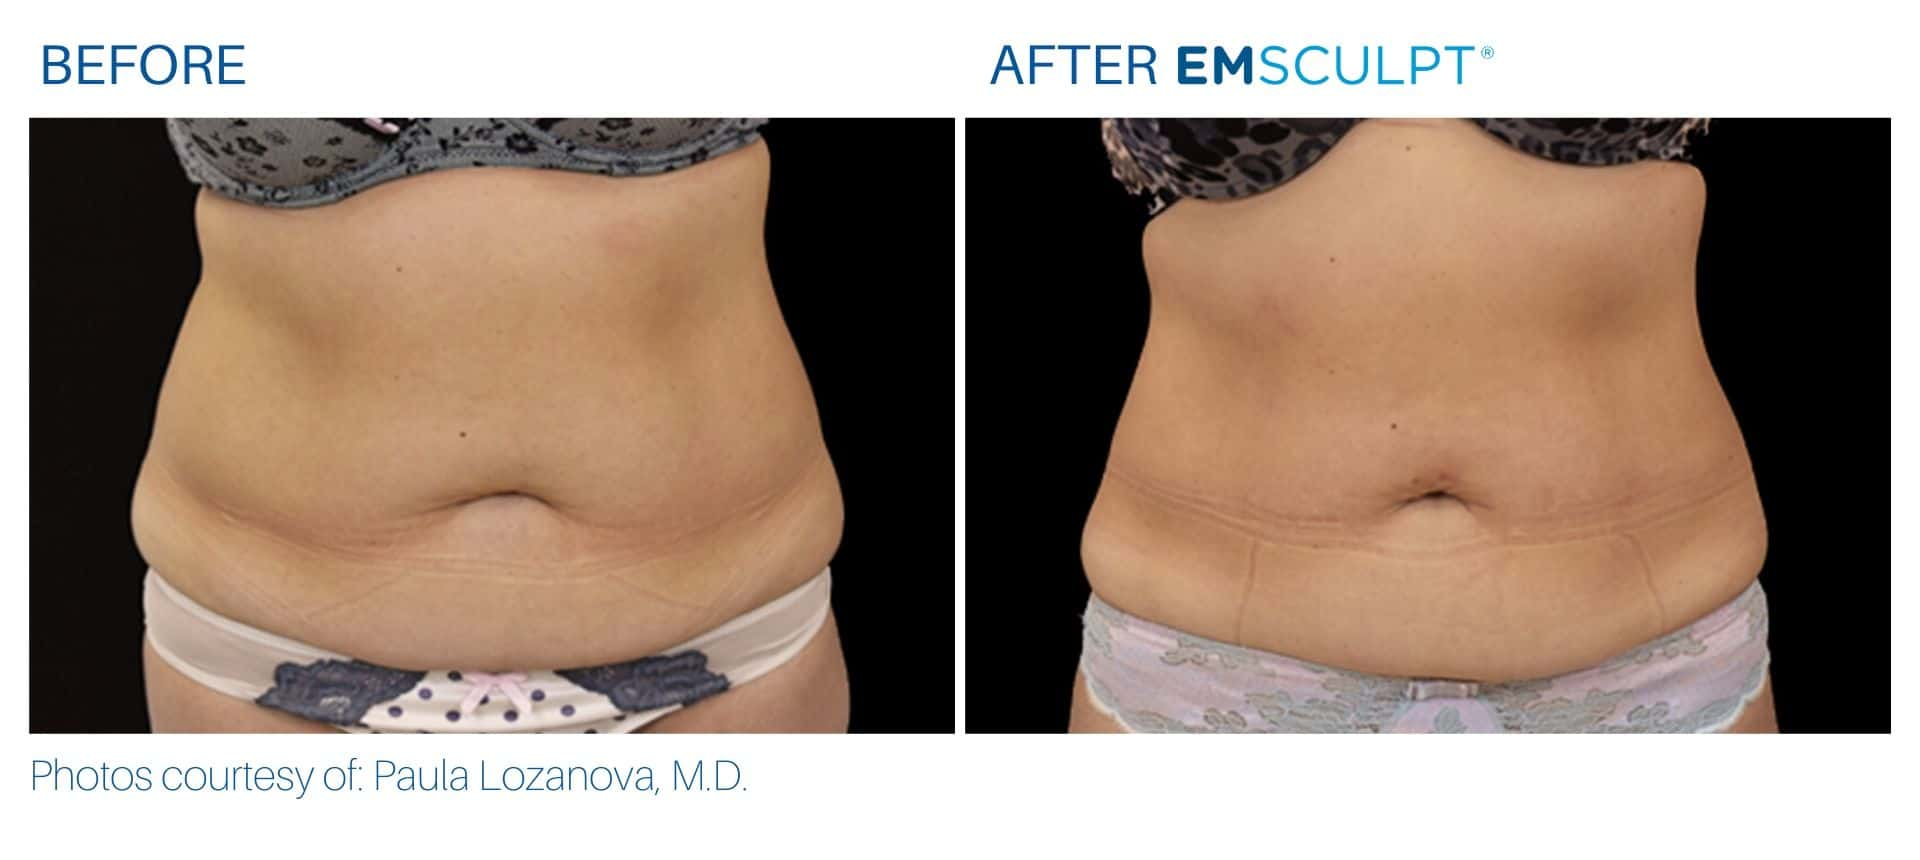 Emsculpt before and after abdomen treatment Body Morph MD